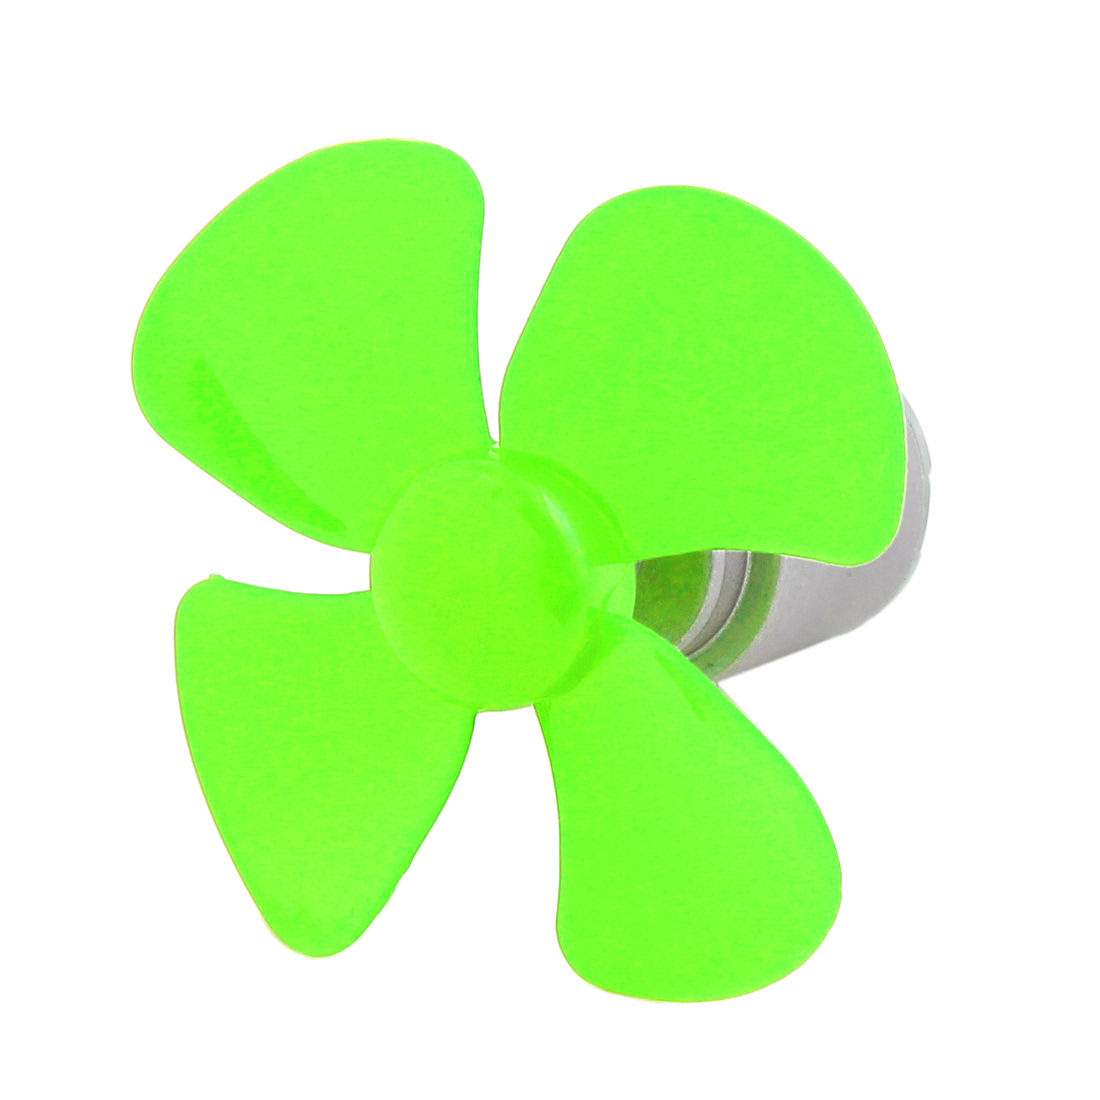 DC 3V 0.13A 12500RPM Green Strong Force Motor 4 Vanes 56mm Dia Propeller for RC Aircraft